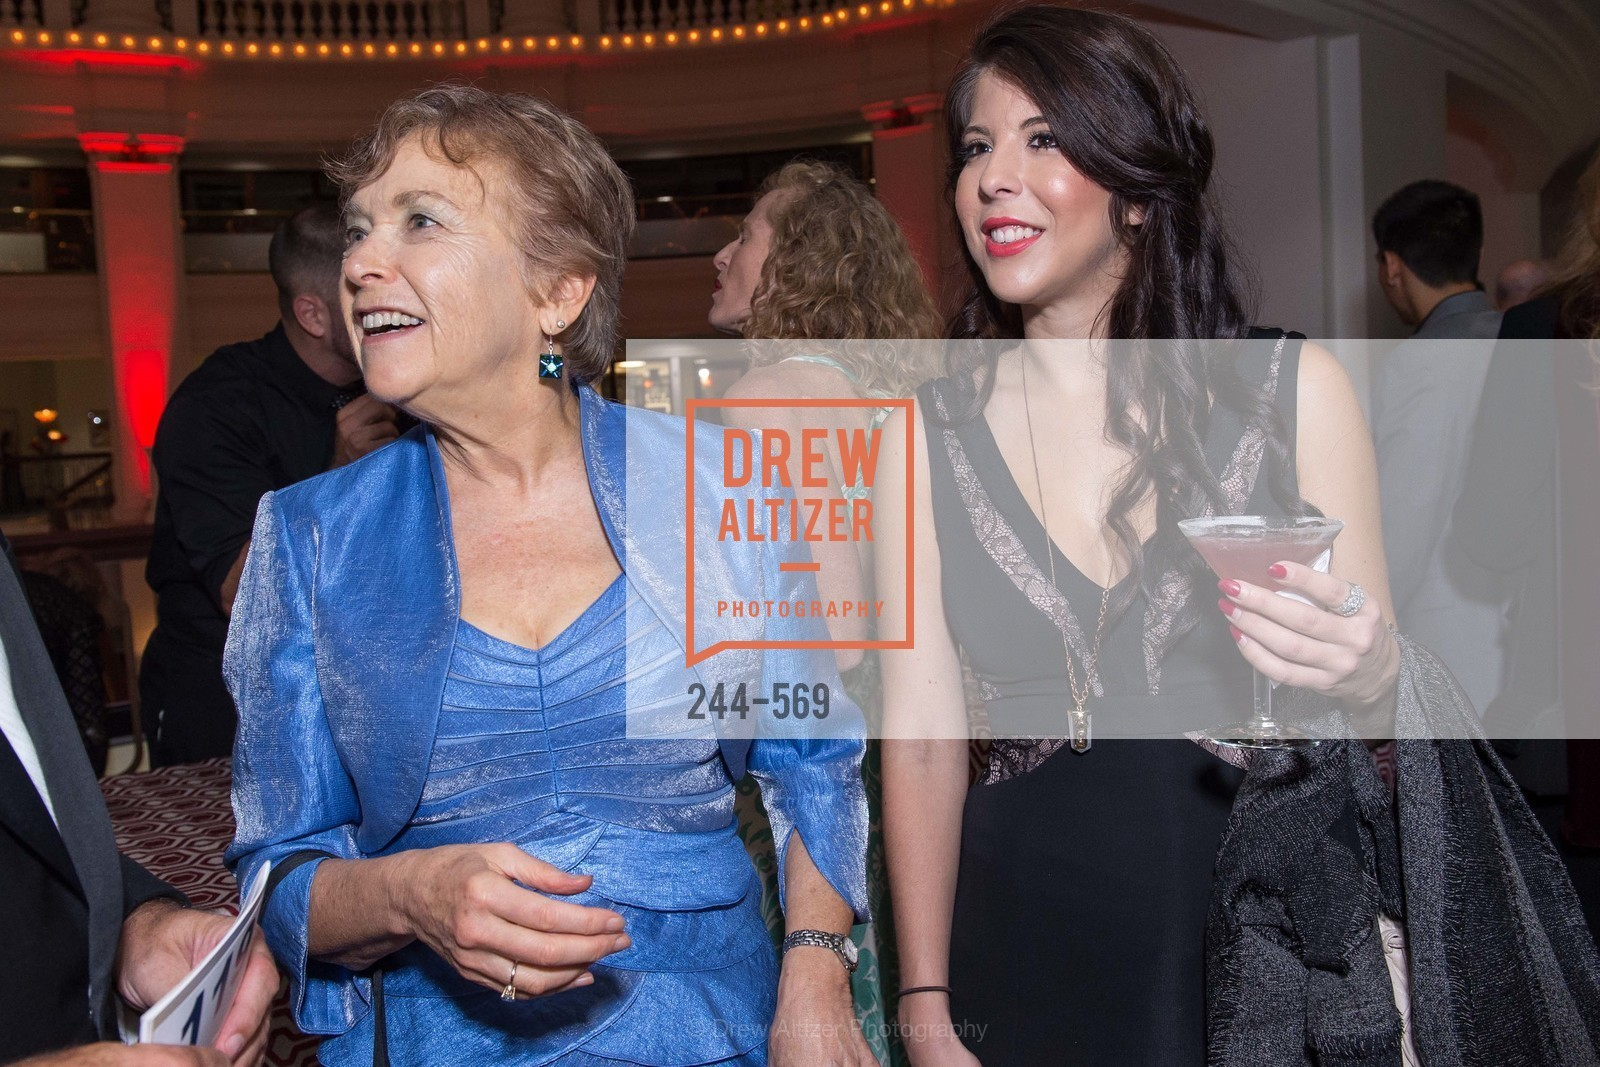 Sheila Jordan, Carina Gonzales, CHABOT Science Center STARLIGHT GALA, US, September 20th, 2014,Drew Altizer, Drew Altizer Photography, full-service agency, private events, San Francisco photographer, photographer california